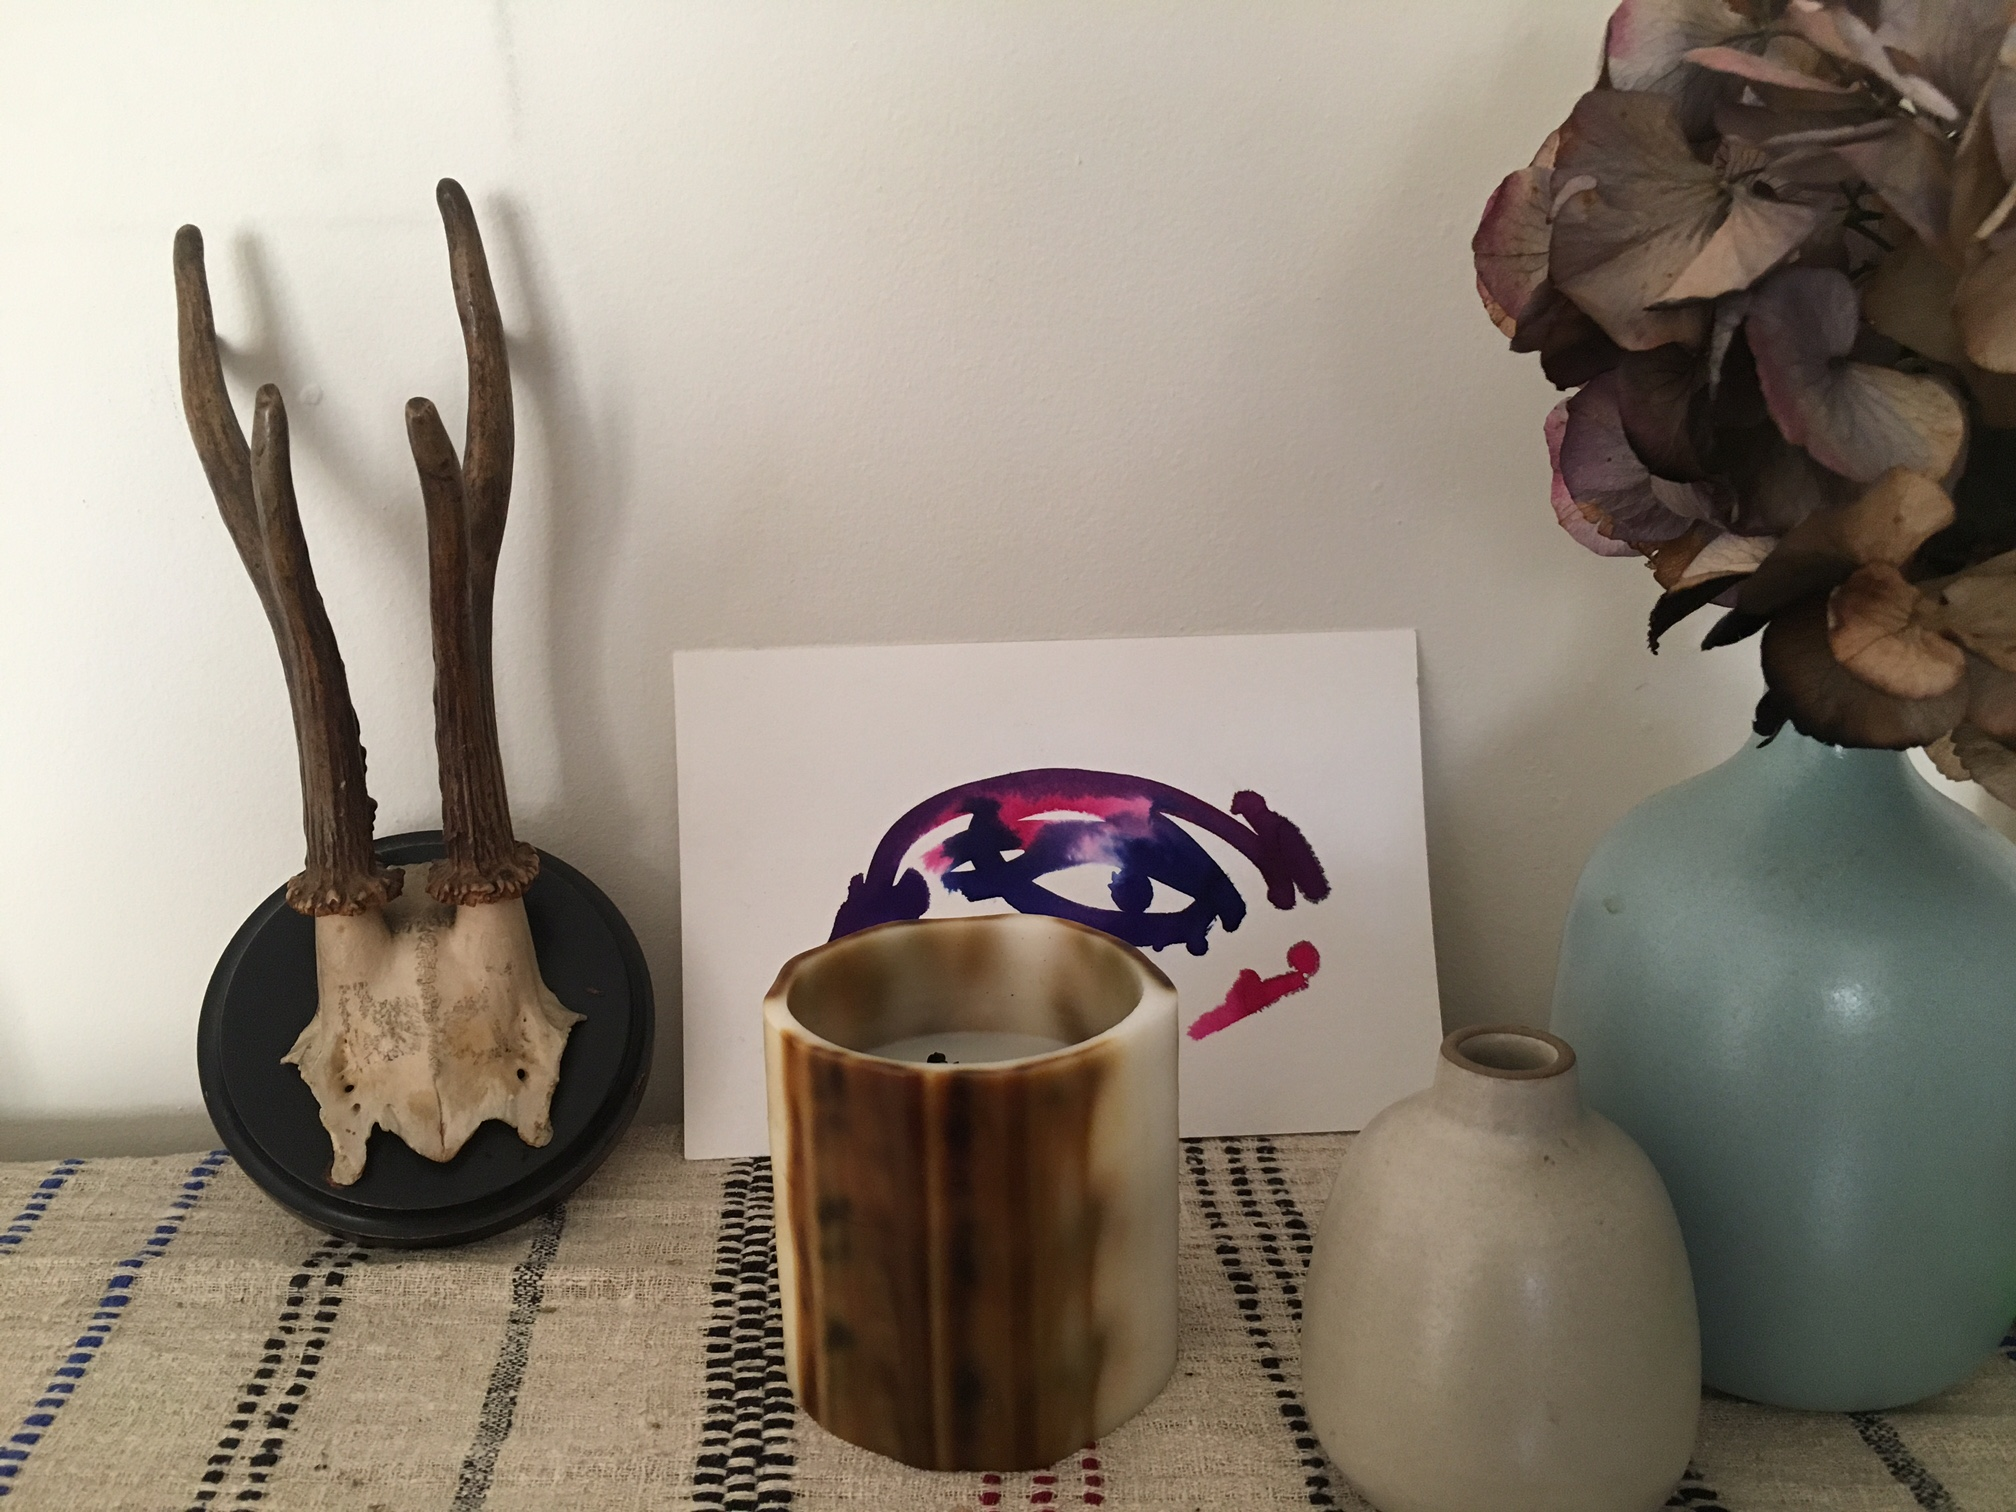 A gift sent to a friend, who shared her still life gathering of objects in a photo.